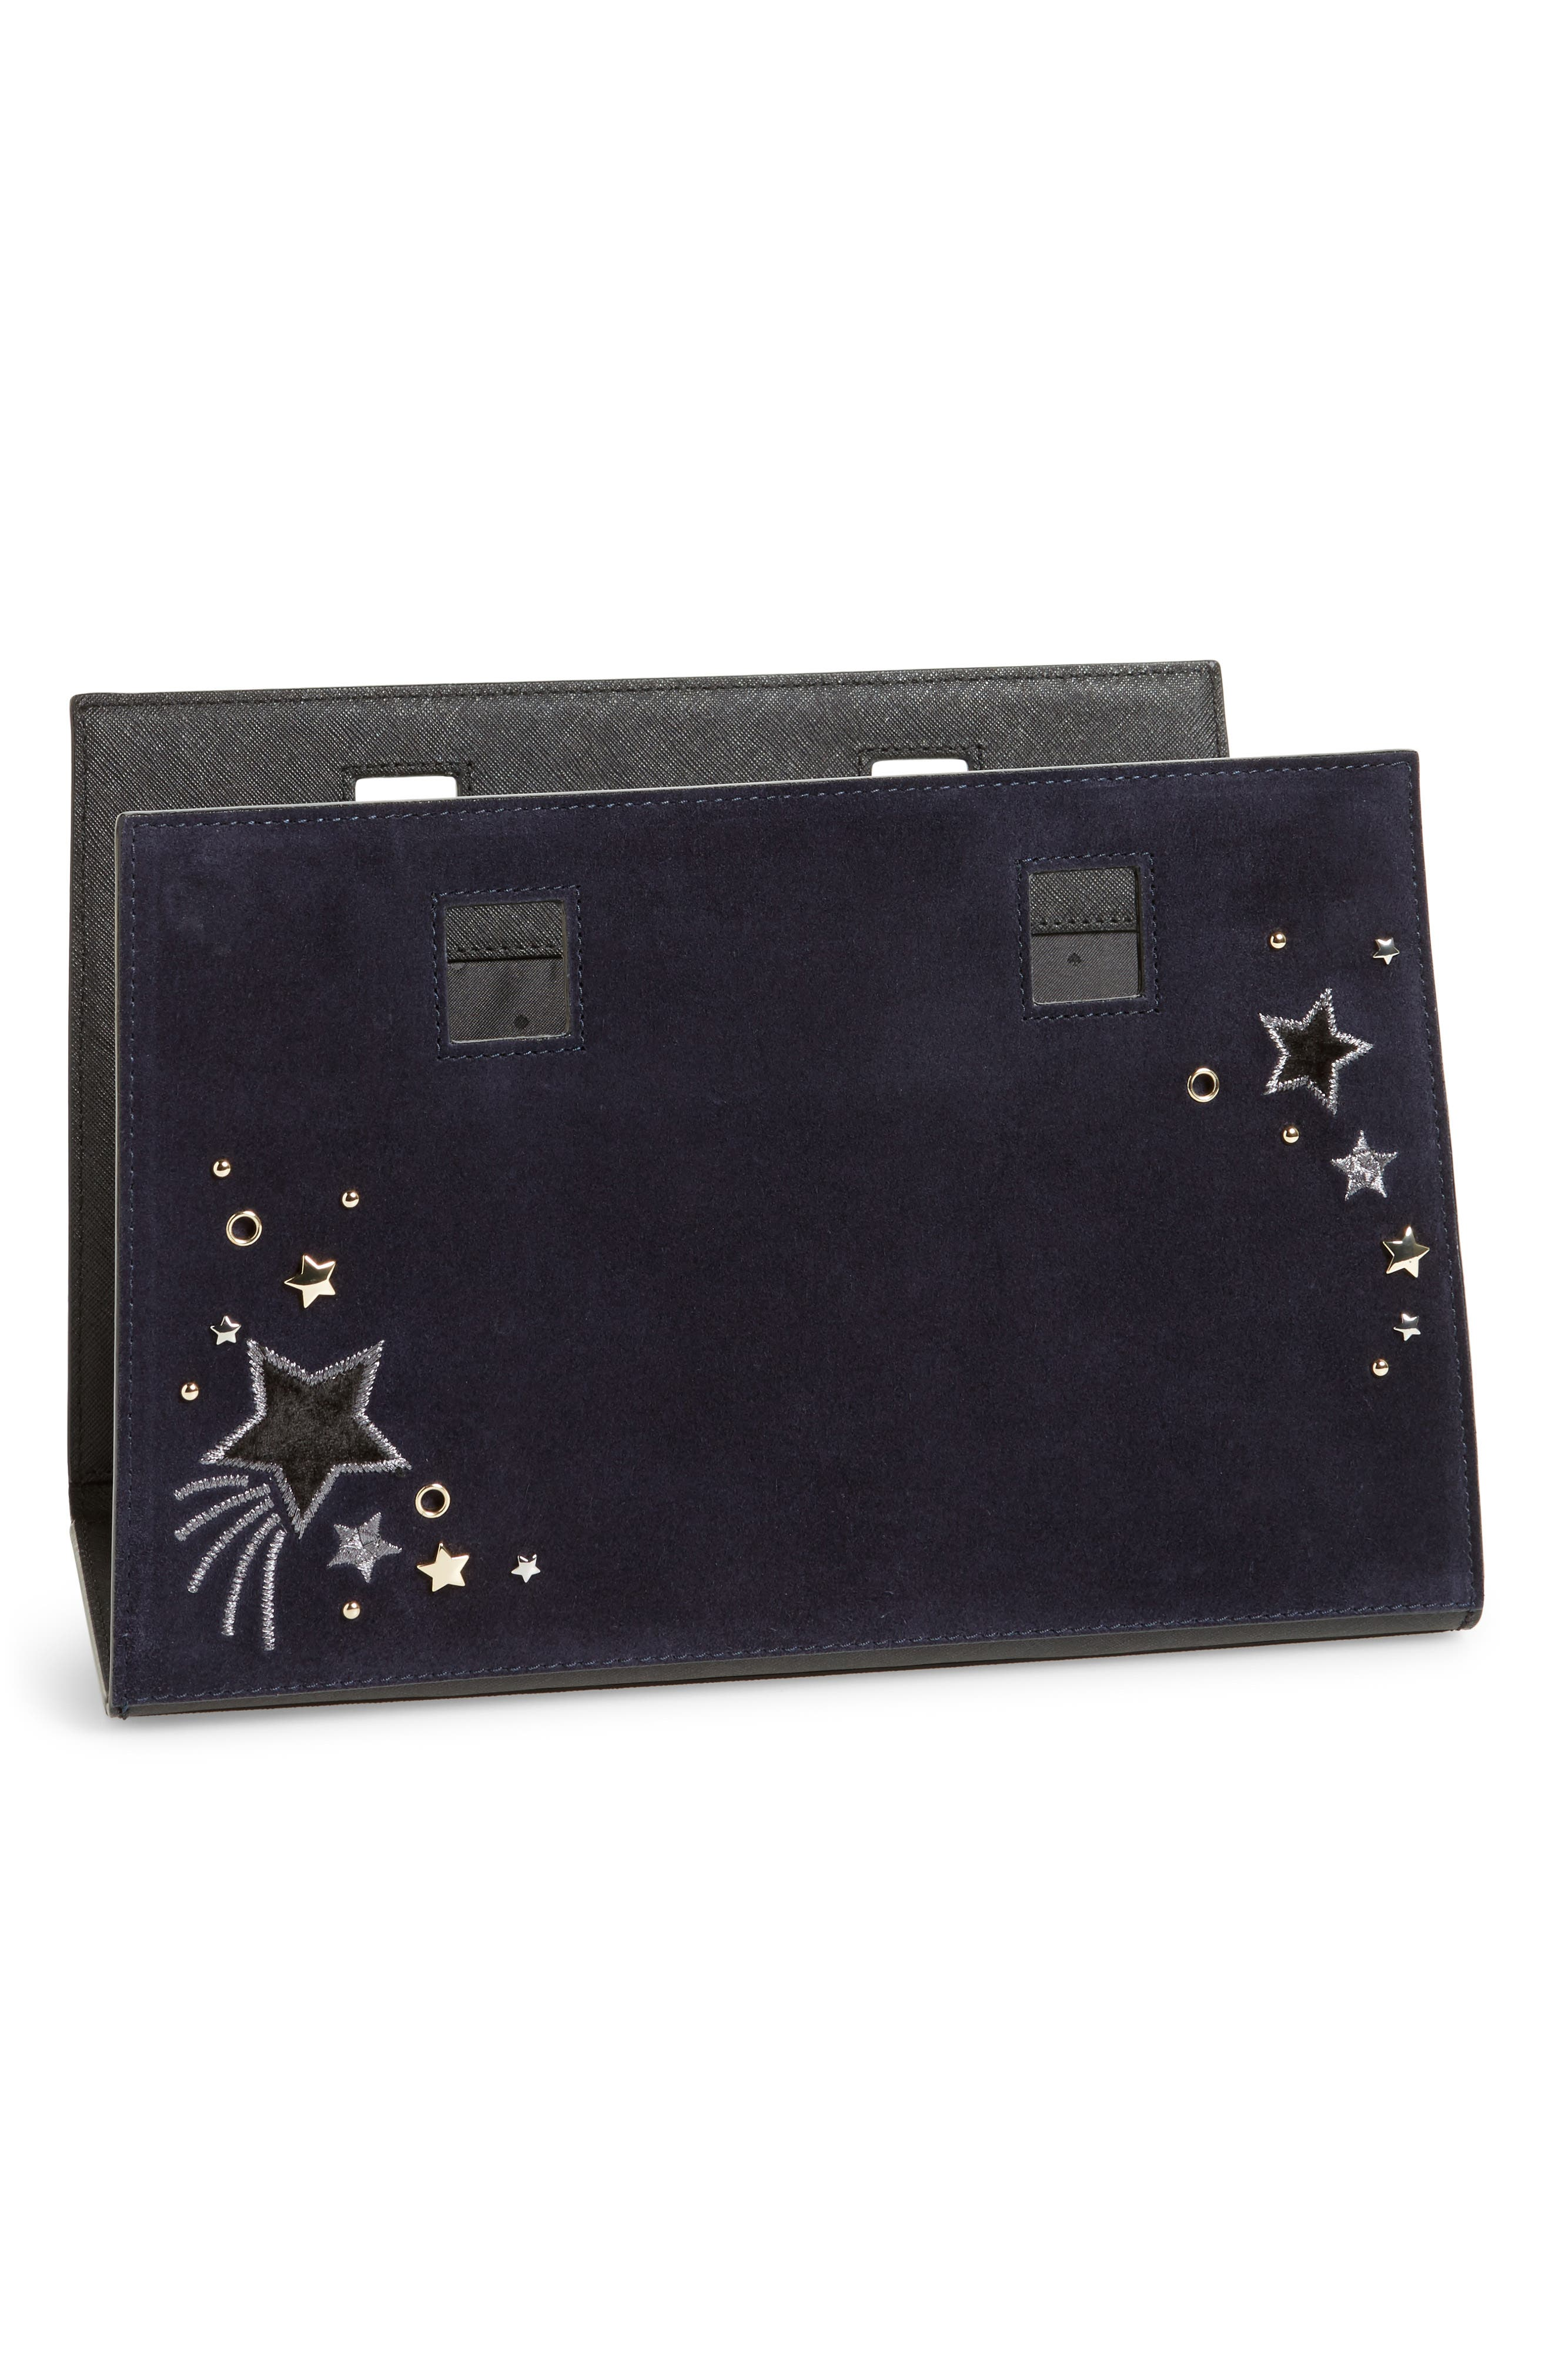 make it mine star embellished leather snap-on accent flap,                         Main,                         color, Multi